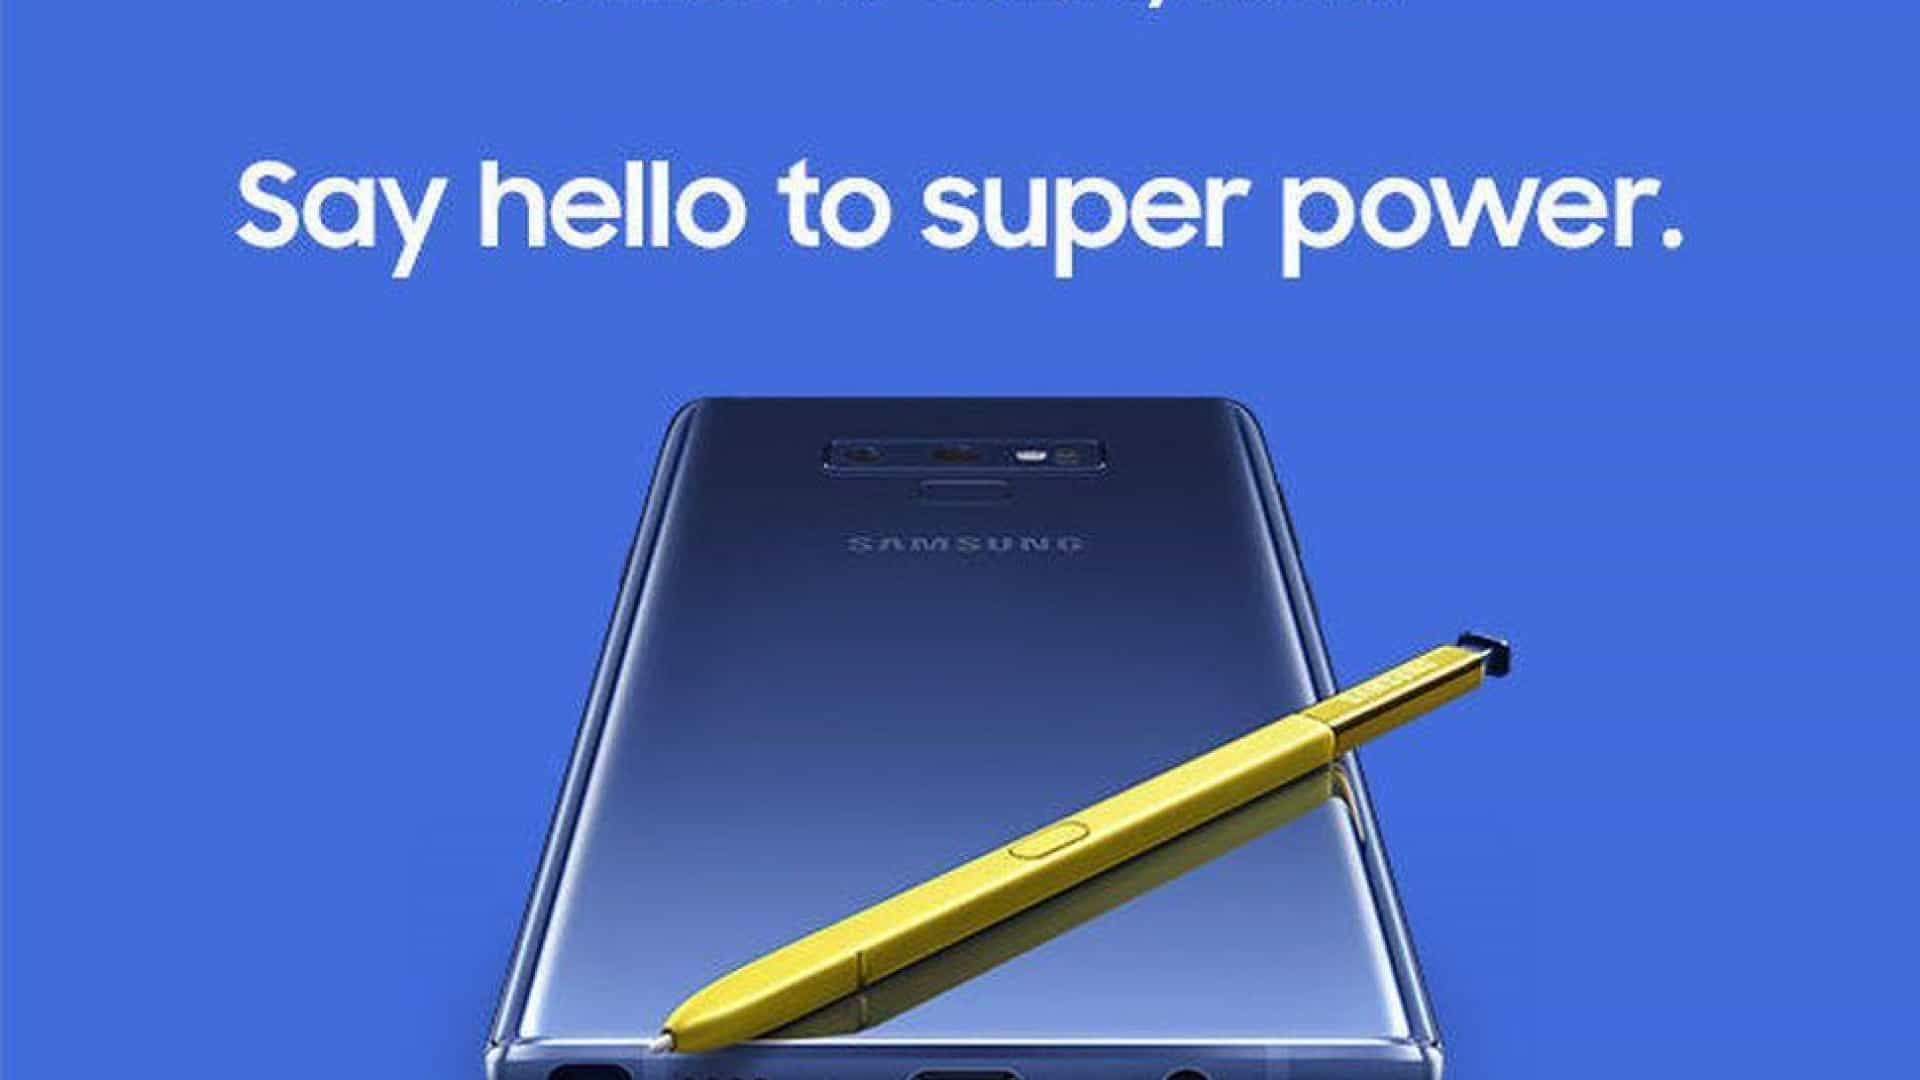 Samsung revela (por acidente) design final do Galaxy Note 9